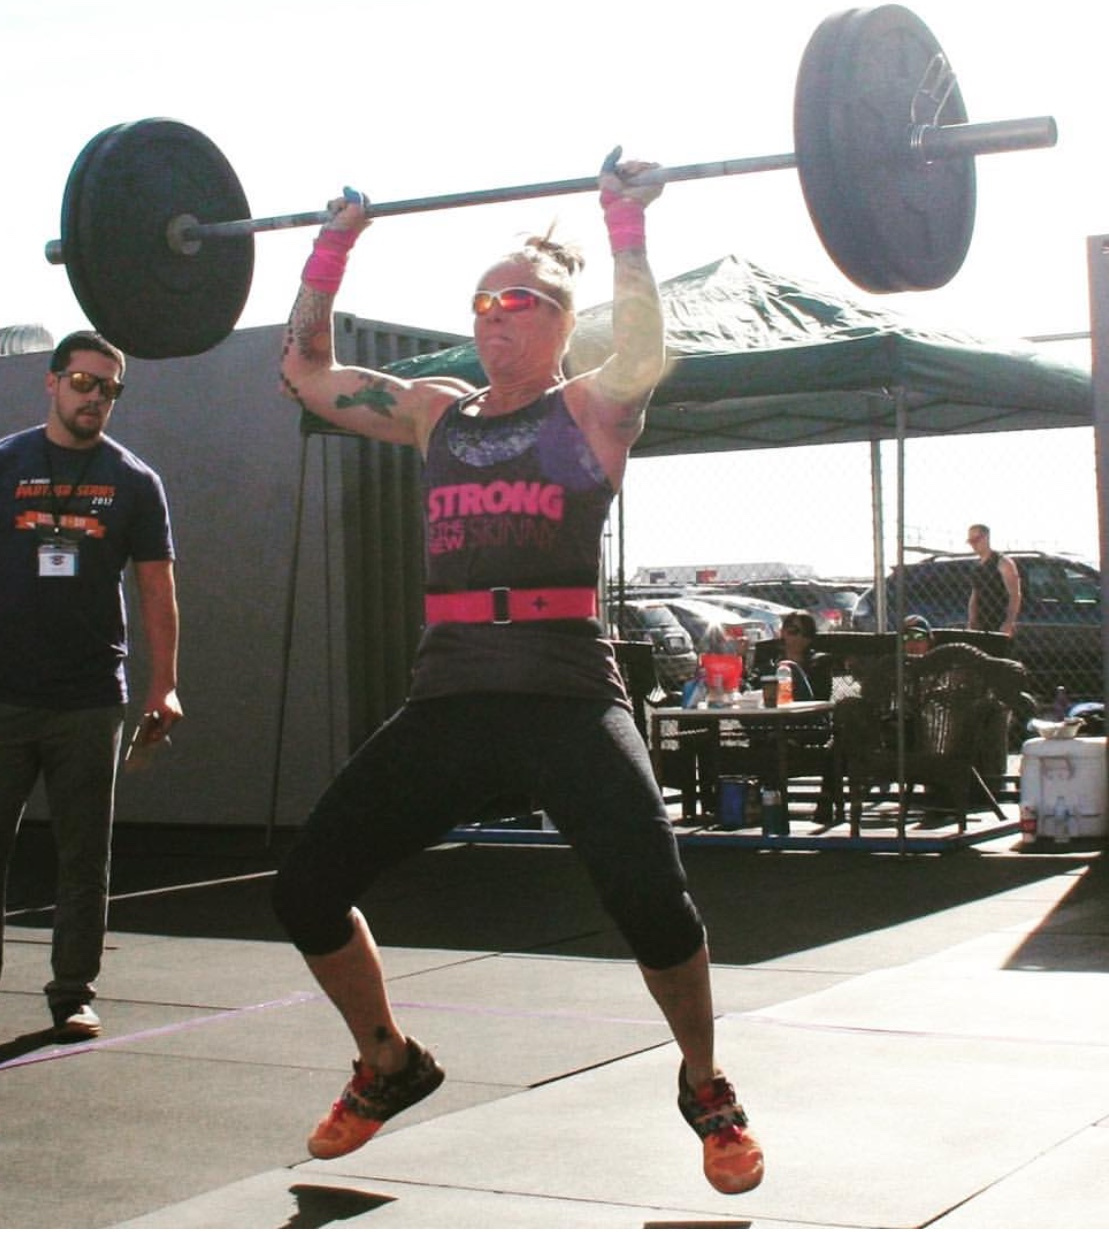 Jennifer doing an olympic lifting move as a master's athlete during a competition